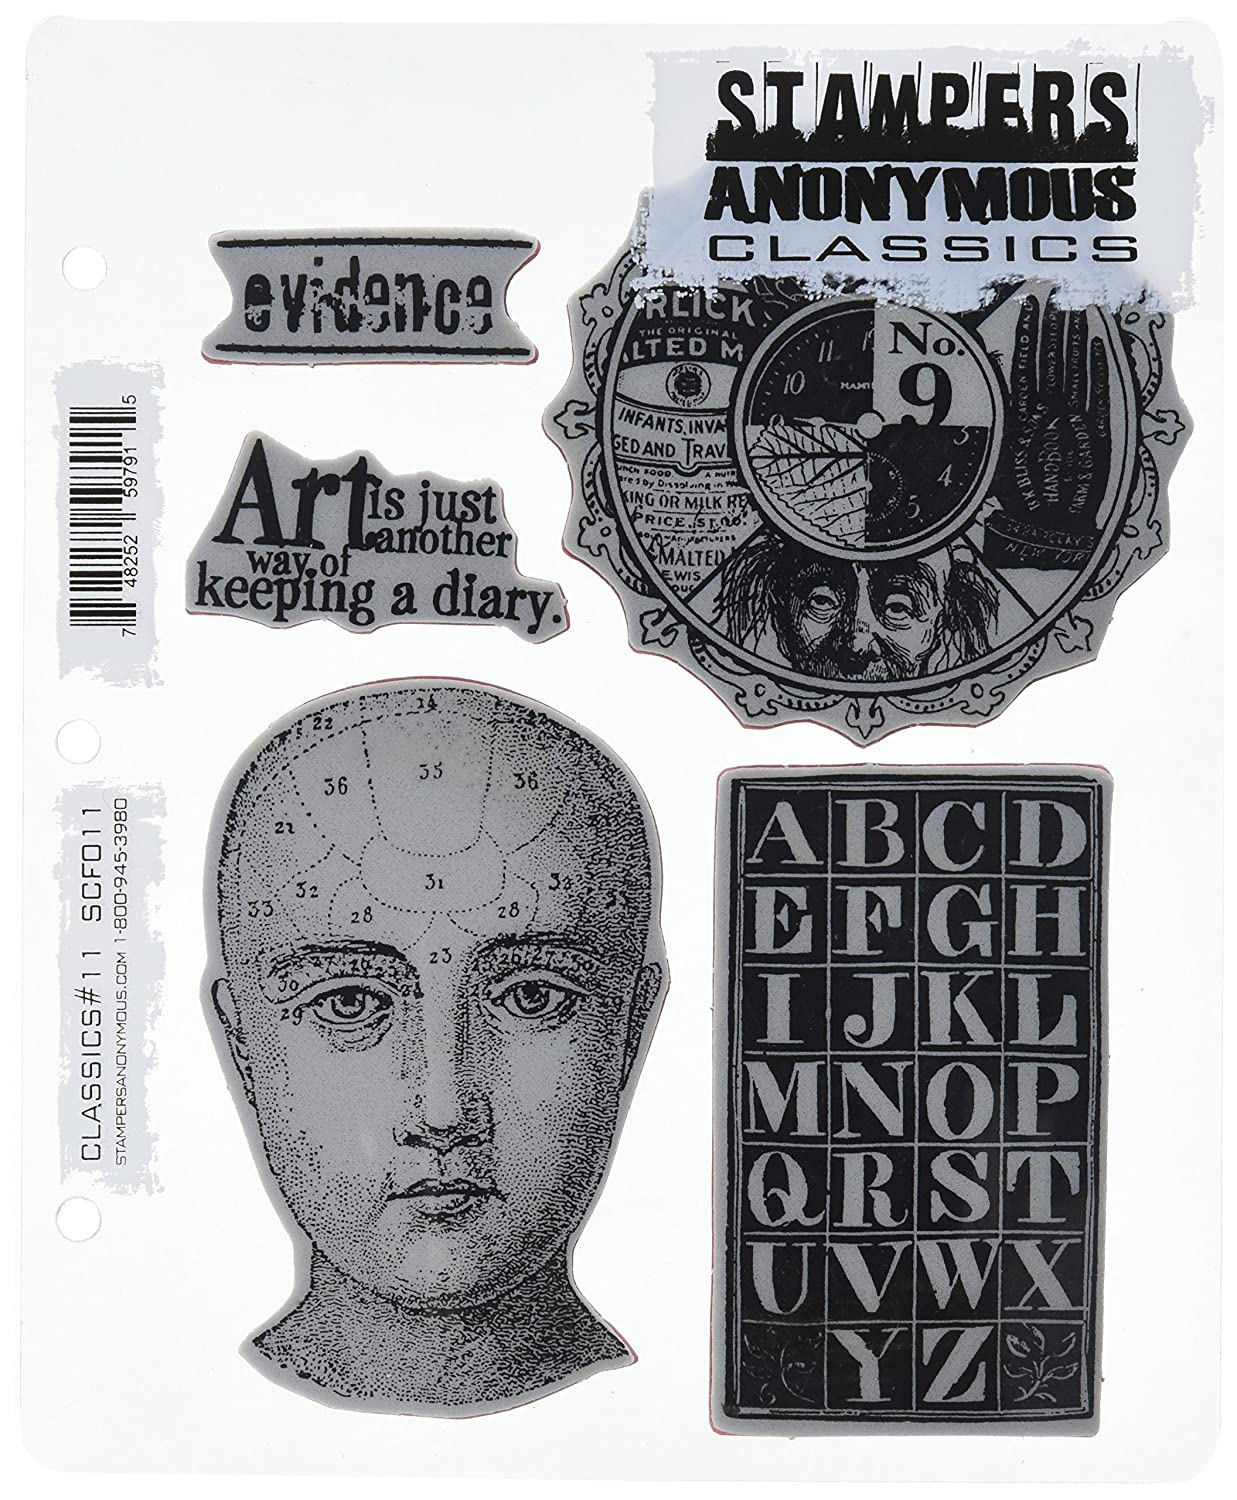 7-Inch by 8.5-Inch Stampers Anonymous Rubber Stamp Set Classics Number 11